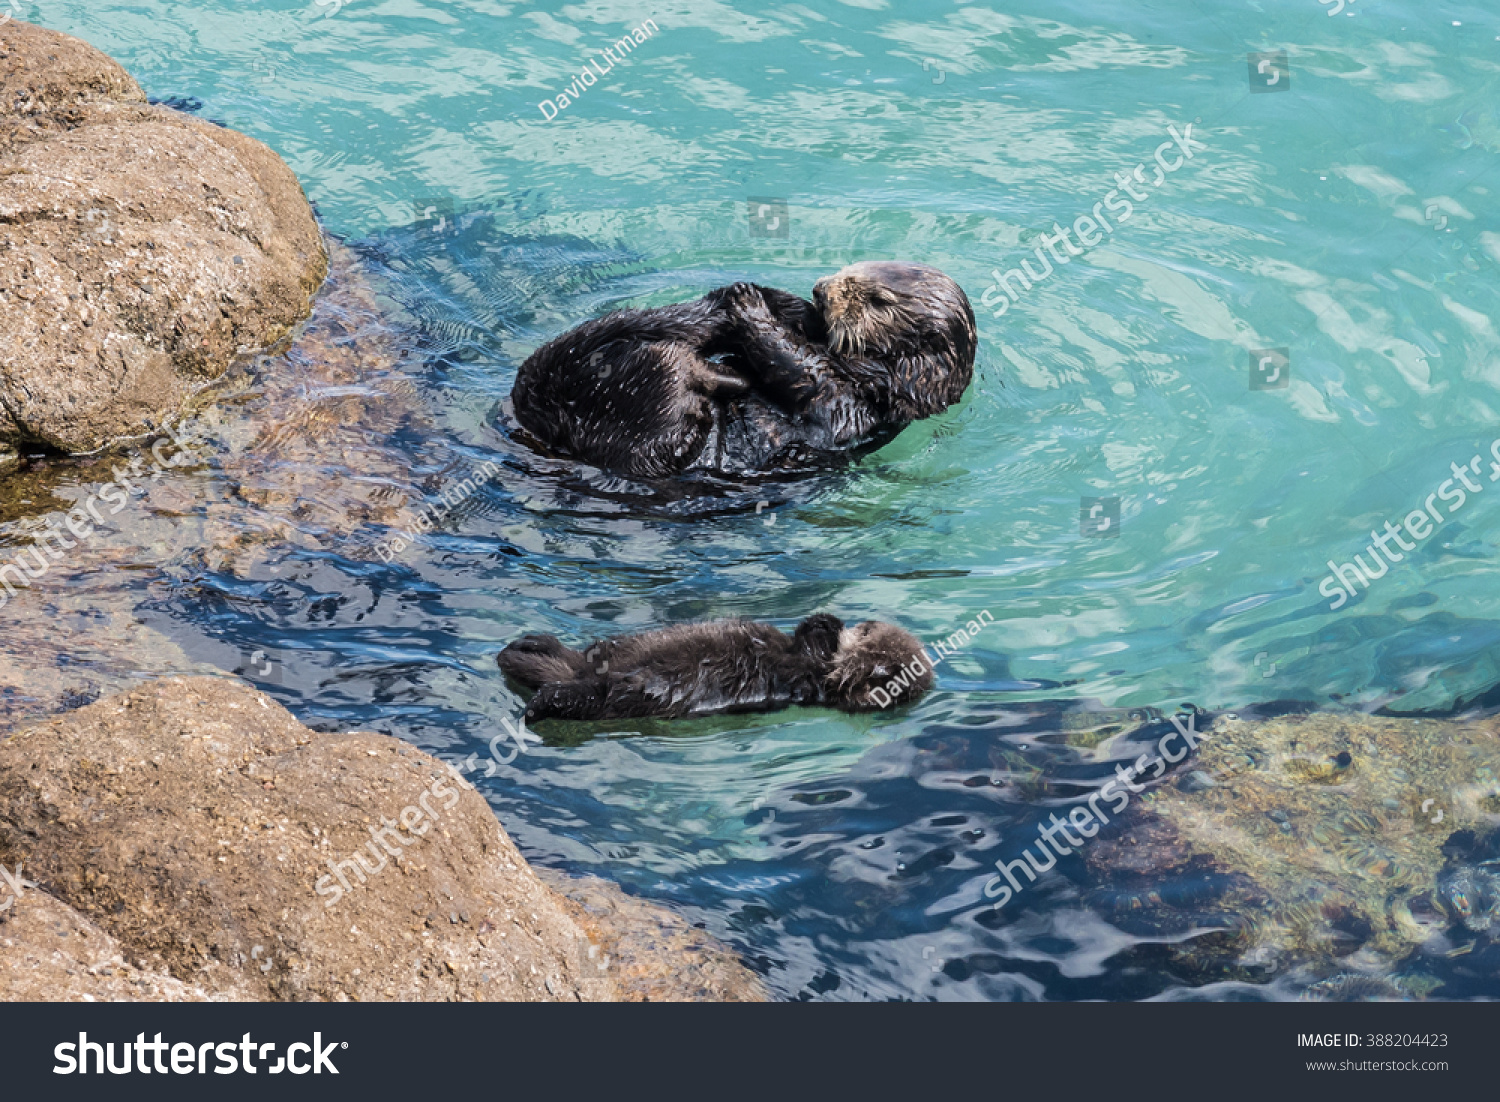 A wild mother Southern Sea Otter (Enhydra lutris) and her 1-day old newborn pup float in the water of a quiet cove, in Monterey Bay, California. Footage available.